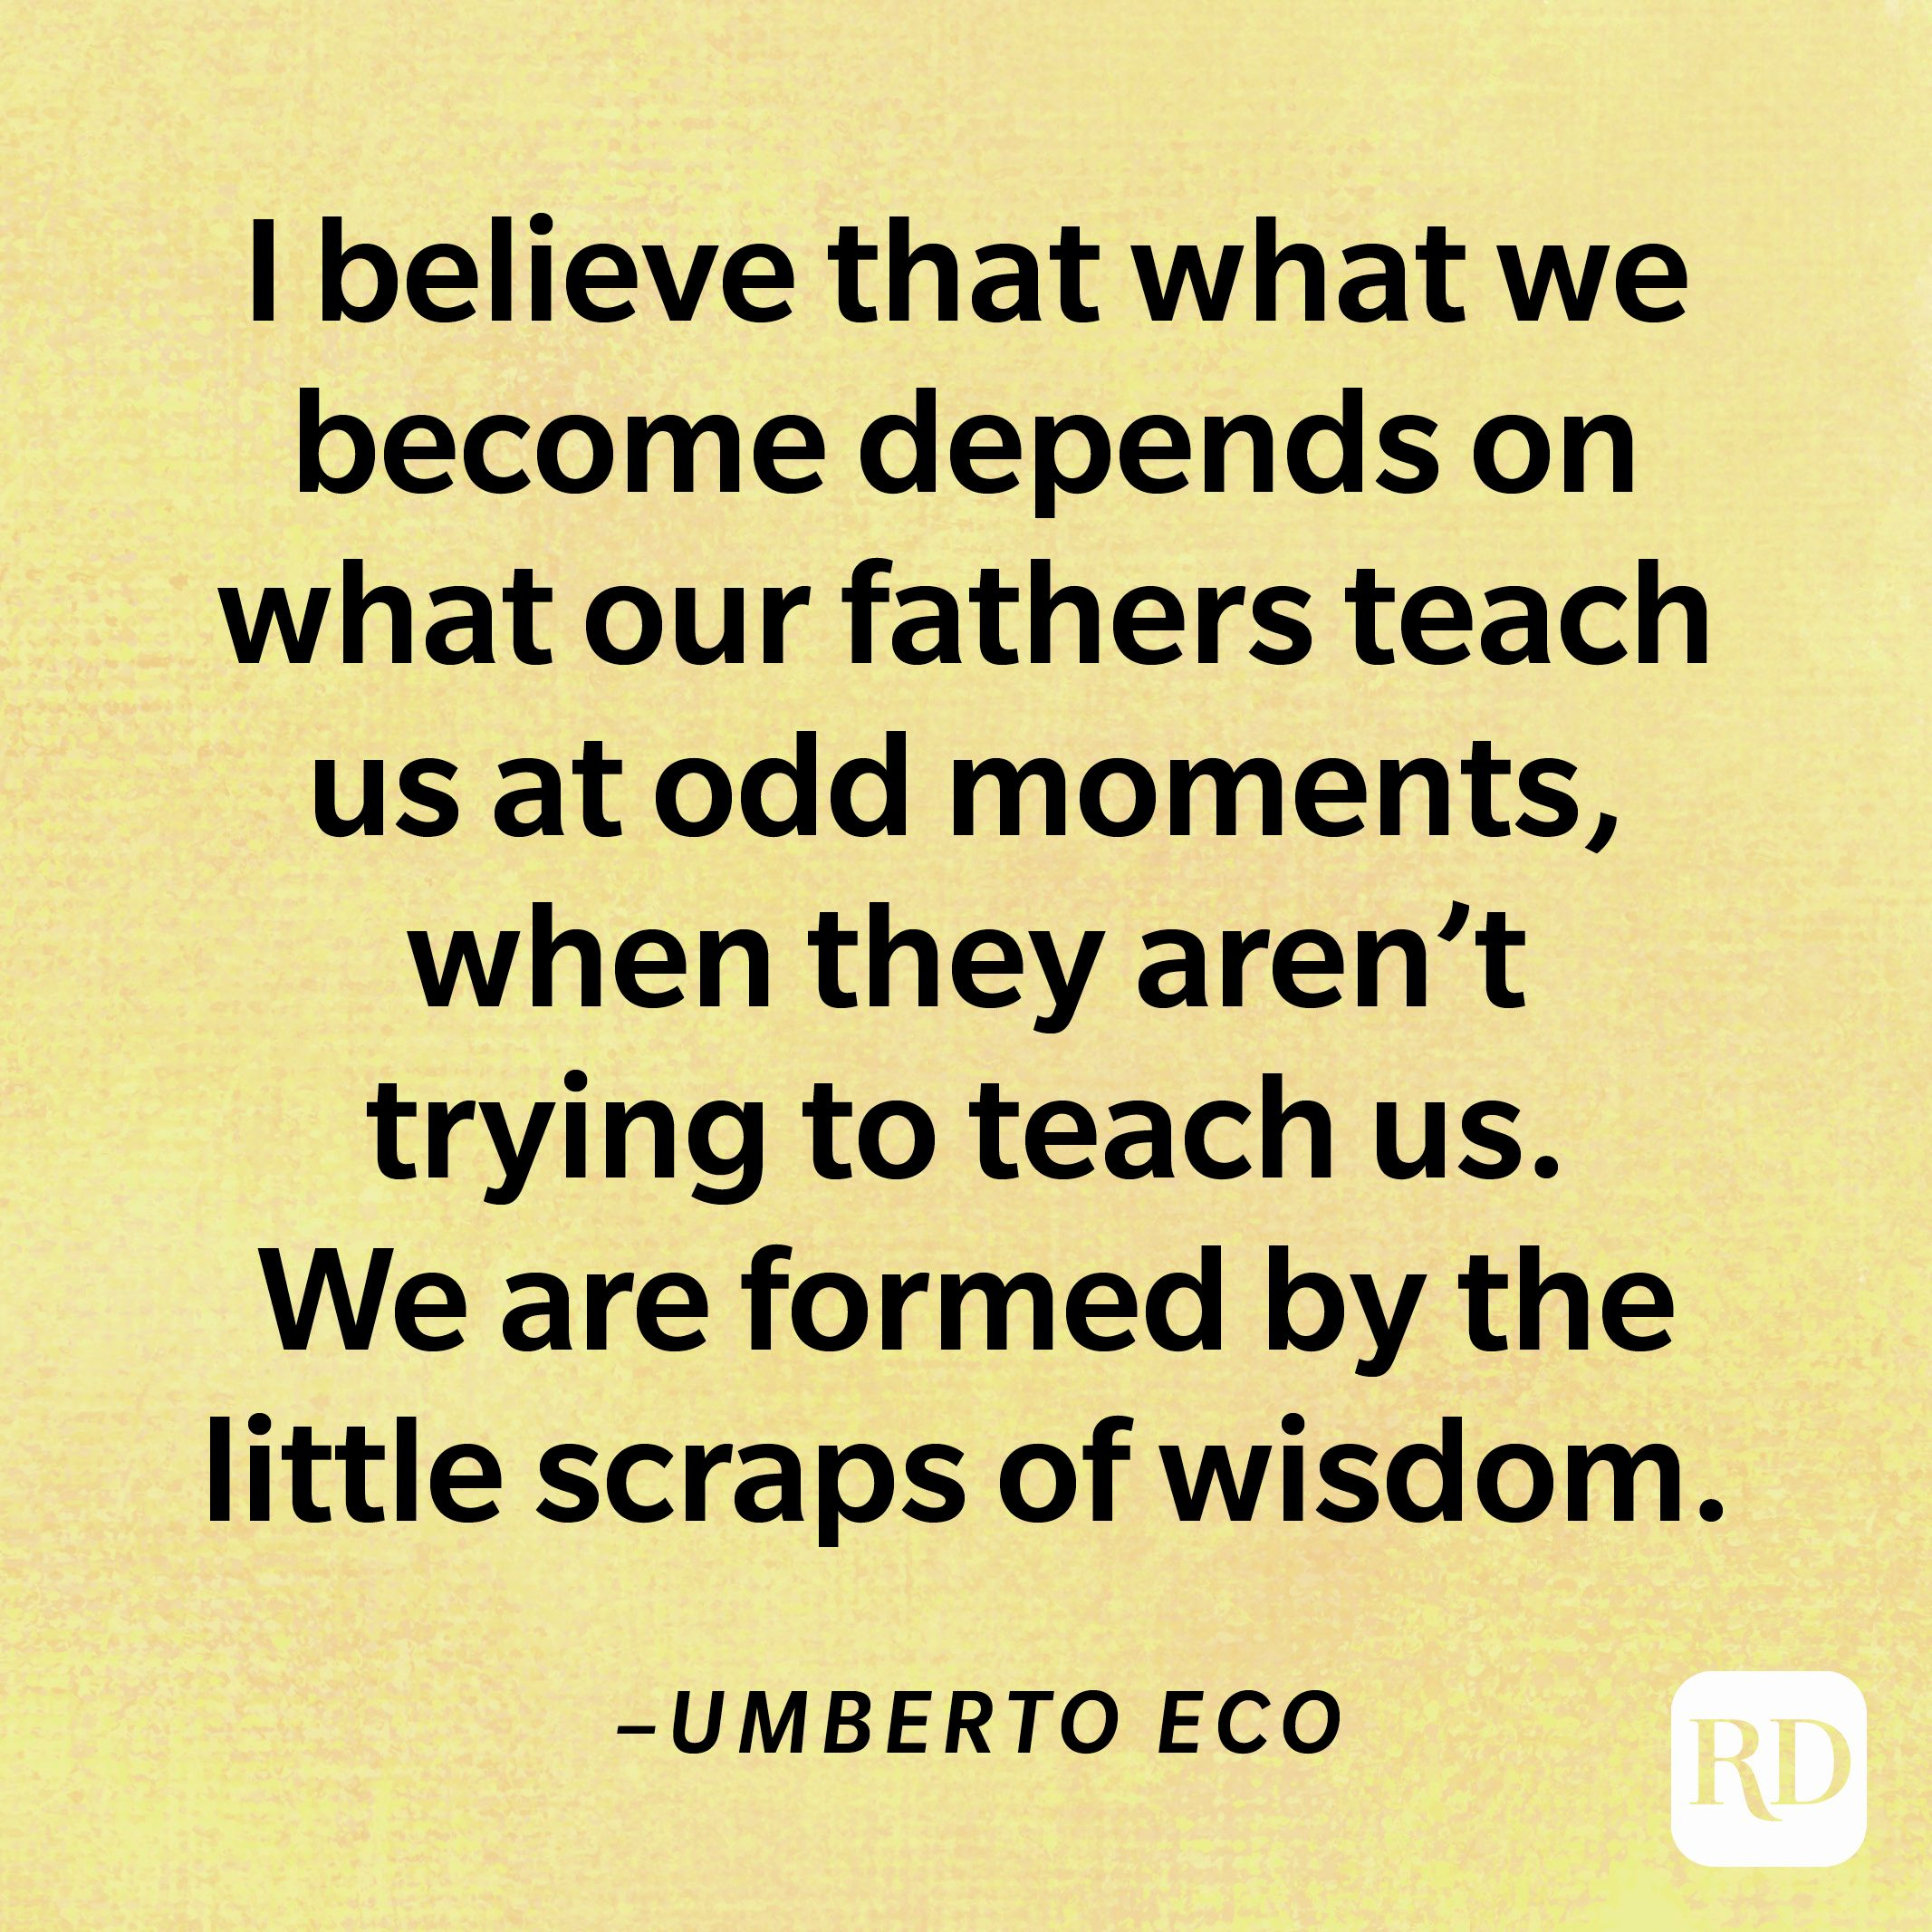 """""""I believe that what we become depends on what our fathers teach us at odd moments, when they aren't trying to teach us. We are formed by the little scraps of wisdom.""""—Umberto Eco"""